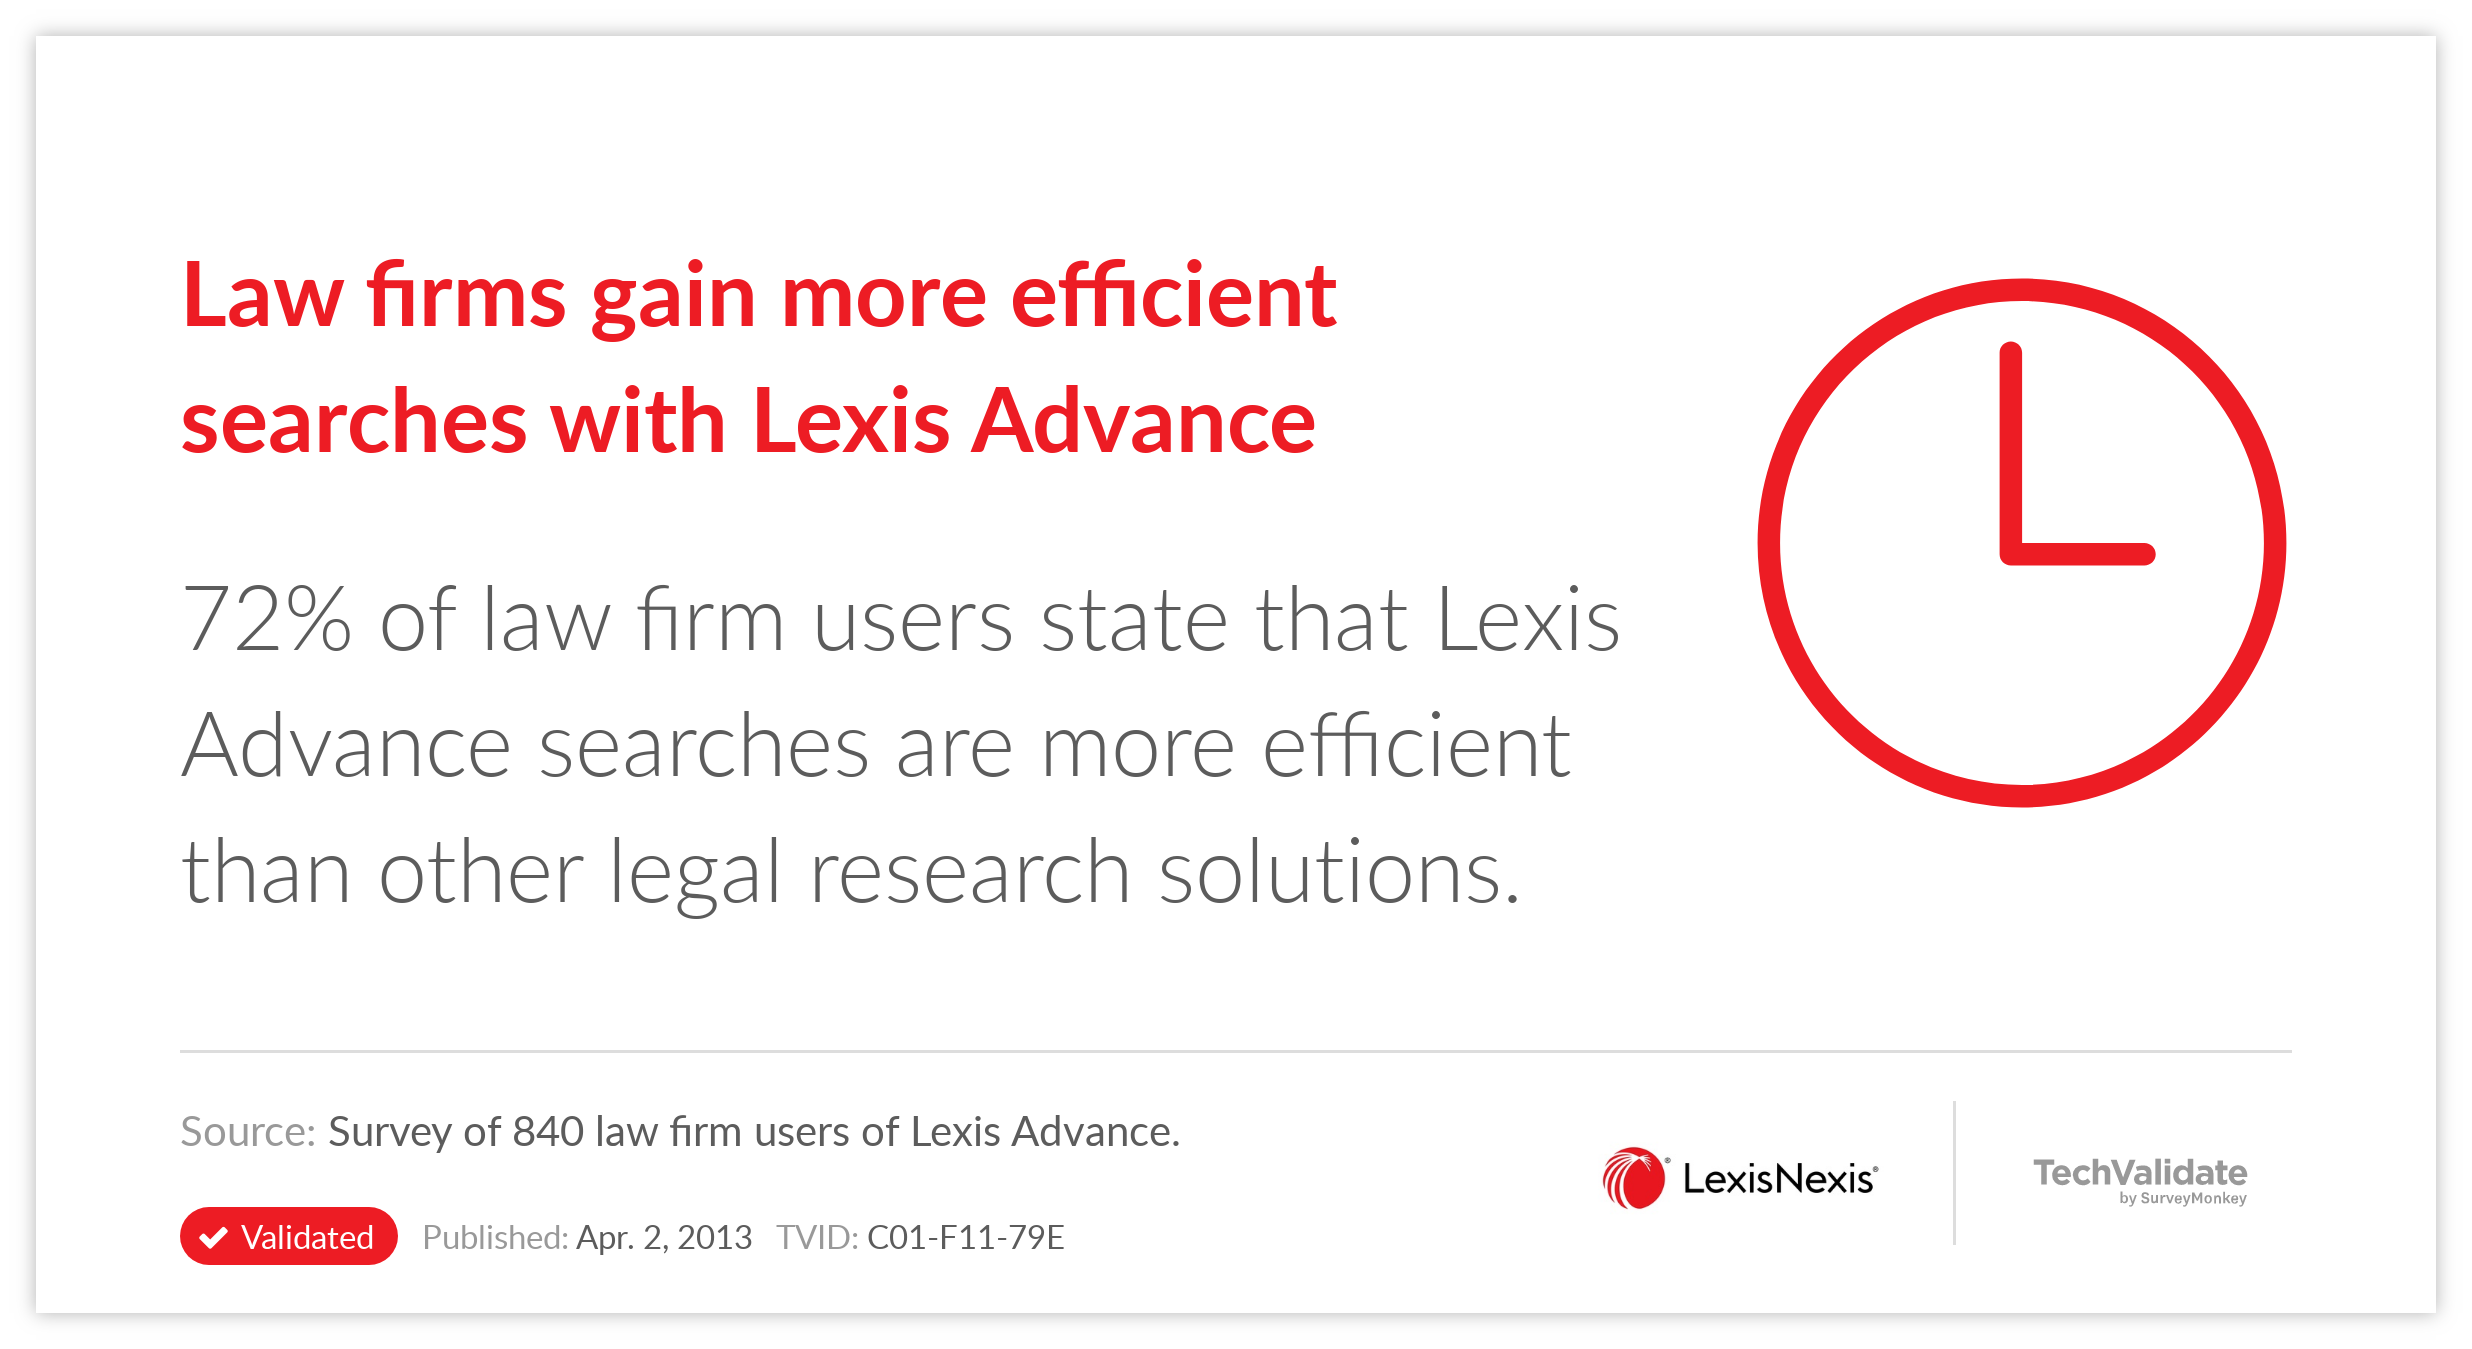 Law firms gain more efficient searches with Lexis Advance